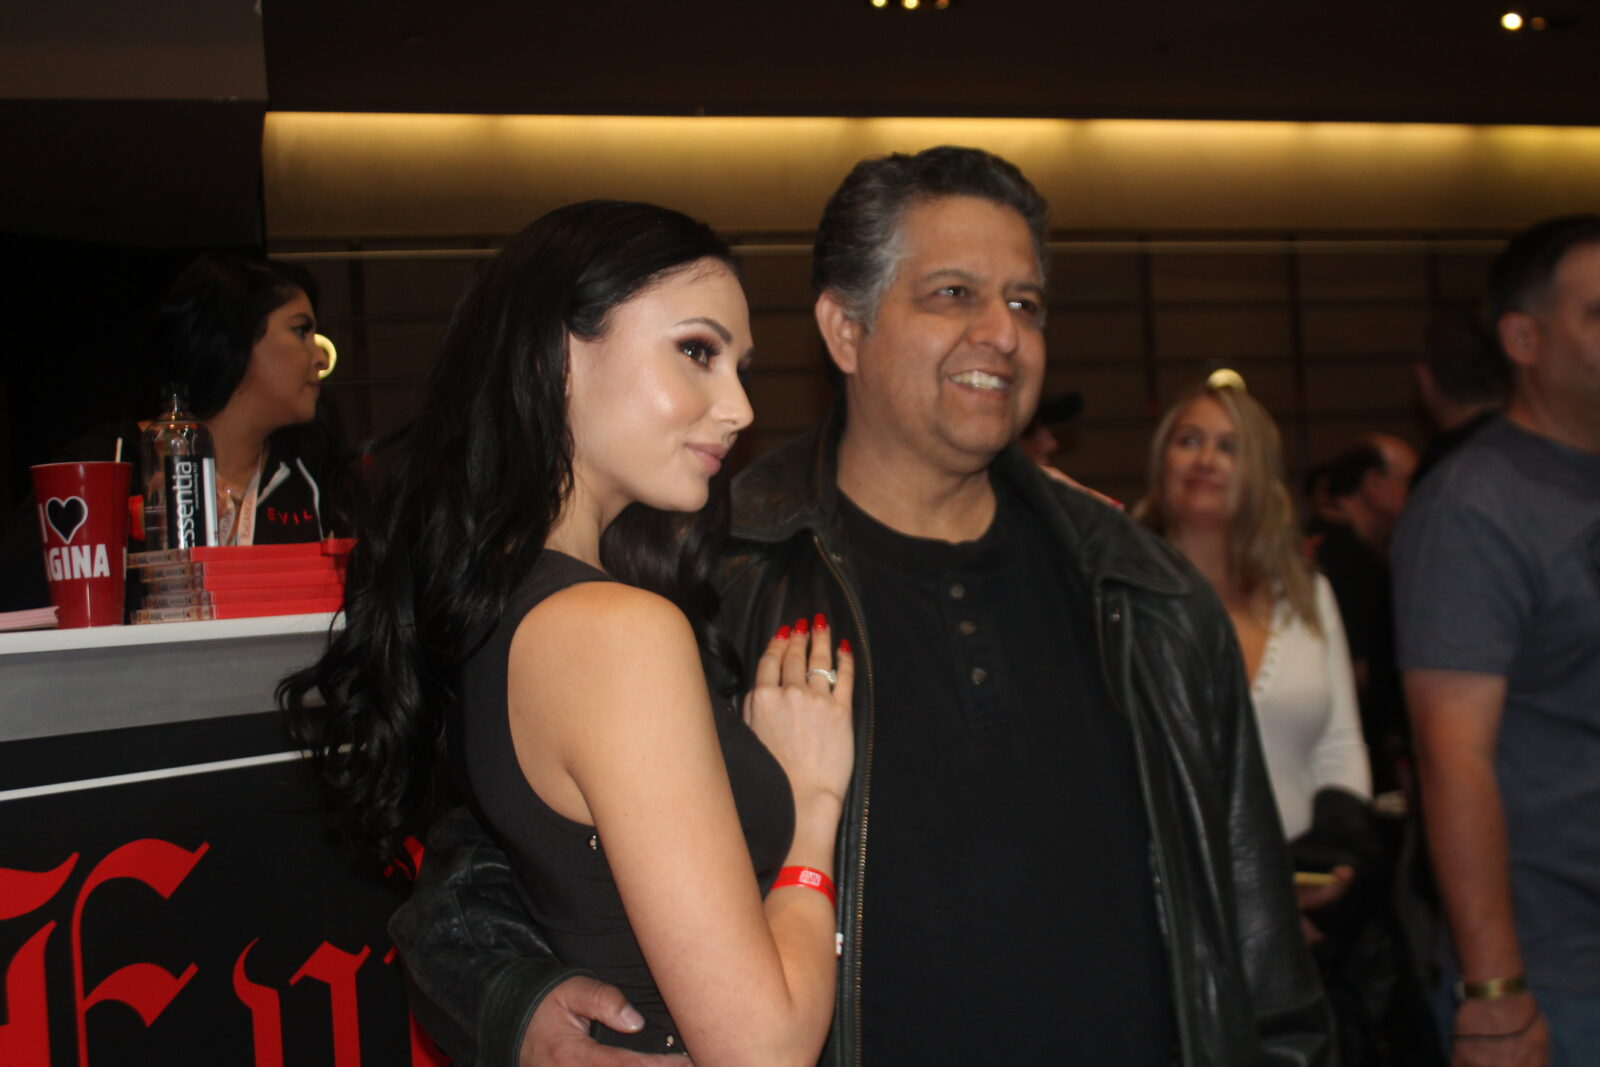 Ariana Marie with fan at the Evil Angel 30th anniversary at the AVN Expo 2019 in Las Vegas, NV.